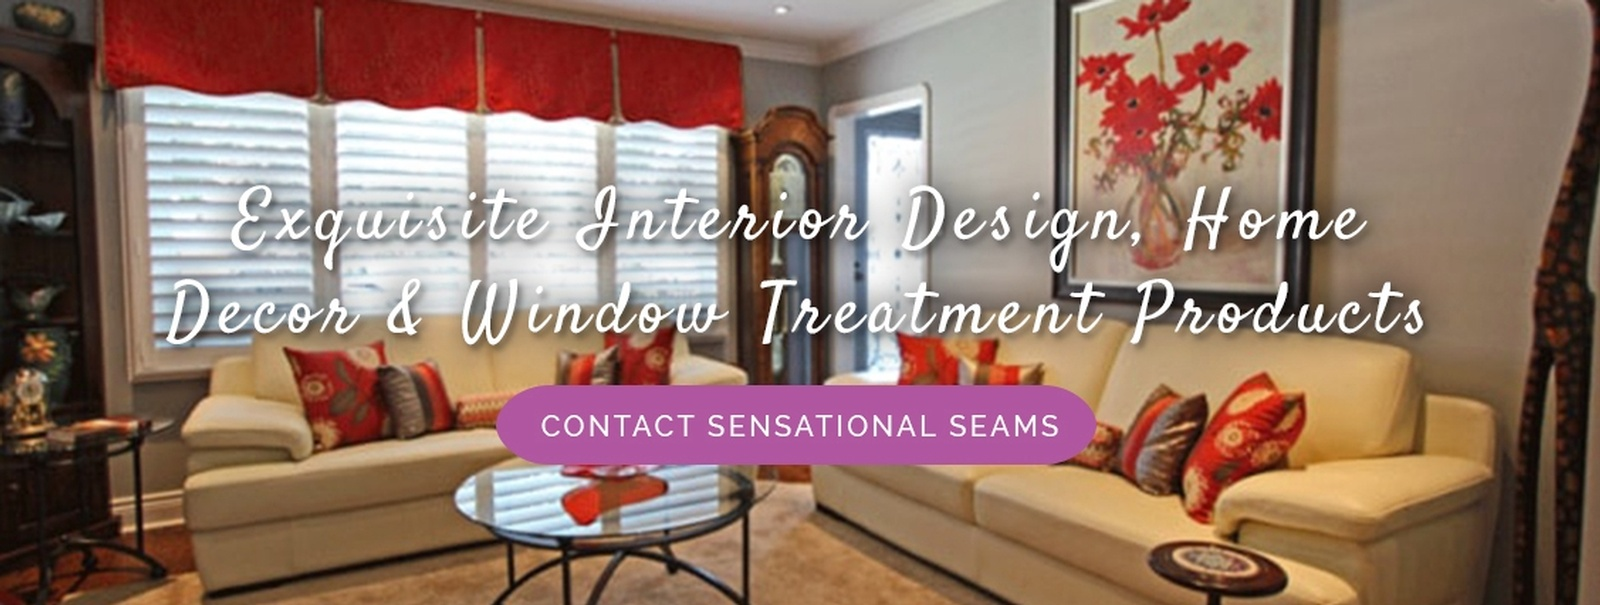 Exquisite Interior Design, Home Decor and Window Treatment Products by Sensational Seams